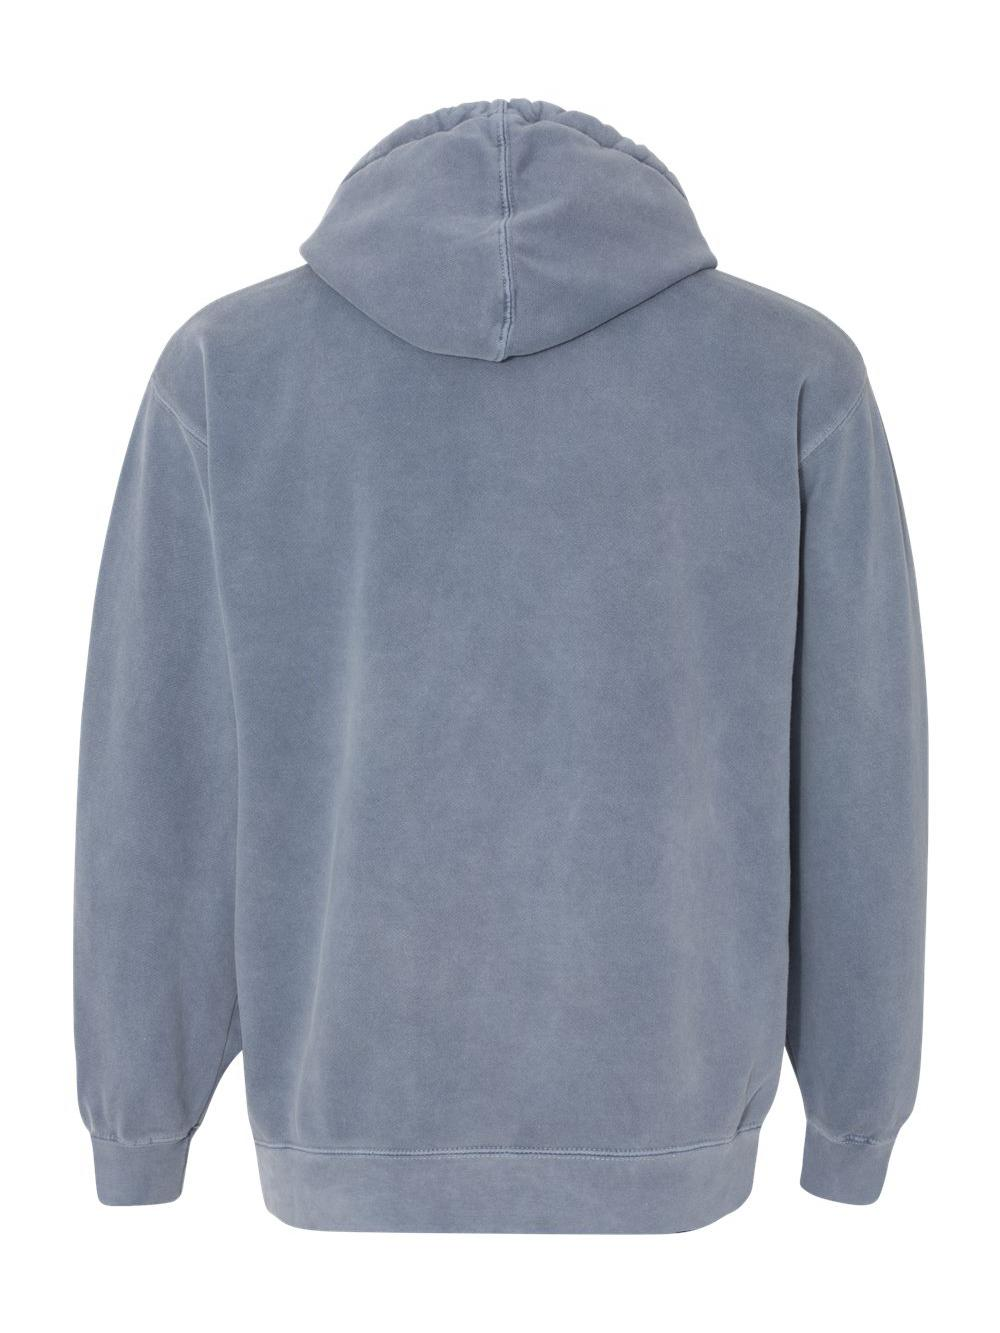 Comfort-Colors-Garment-Dyed-Hooded-Pullover-Sweatshirt-1567 thumbnail 4